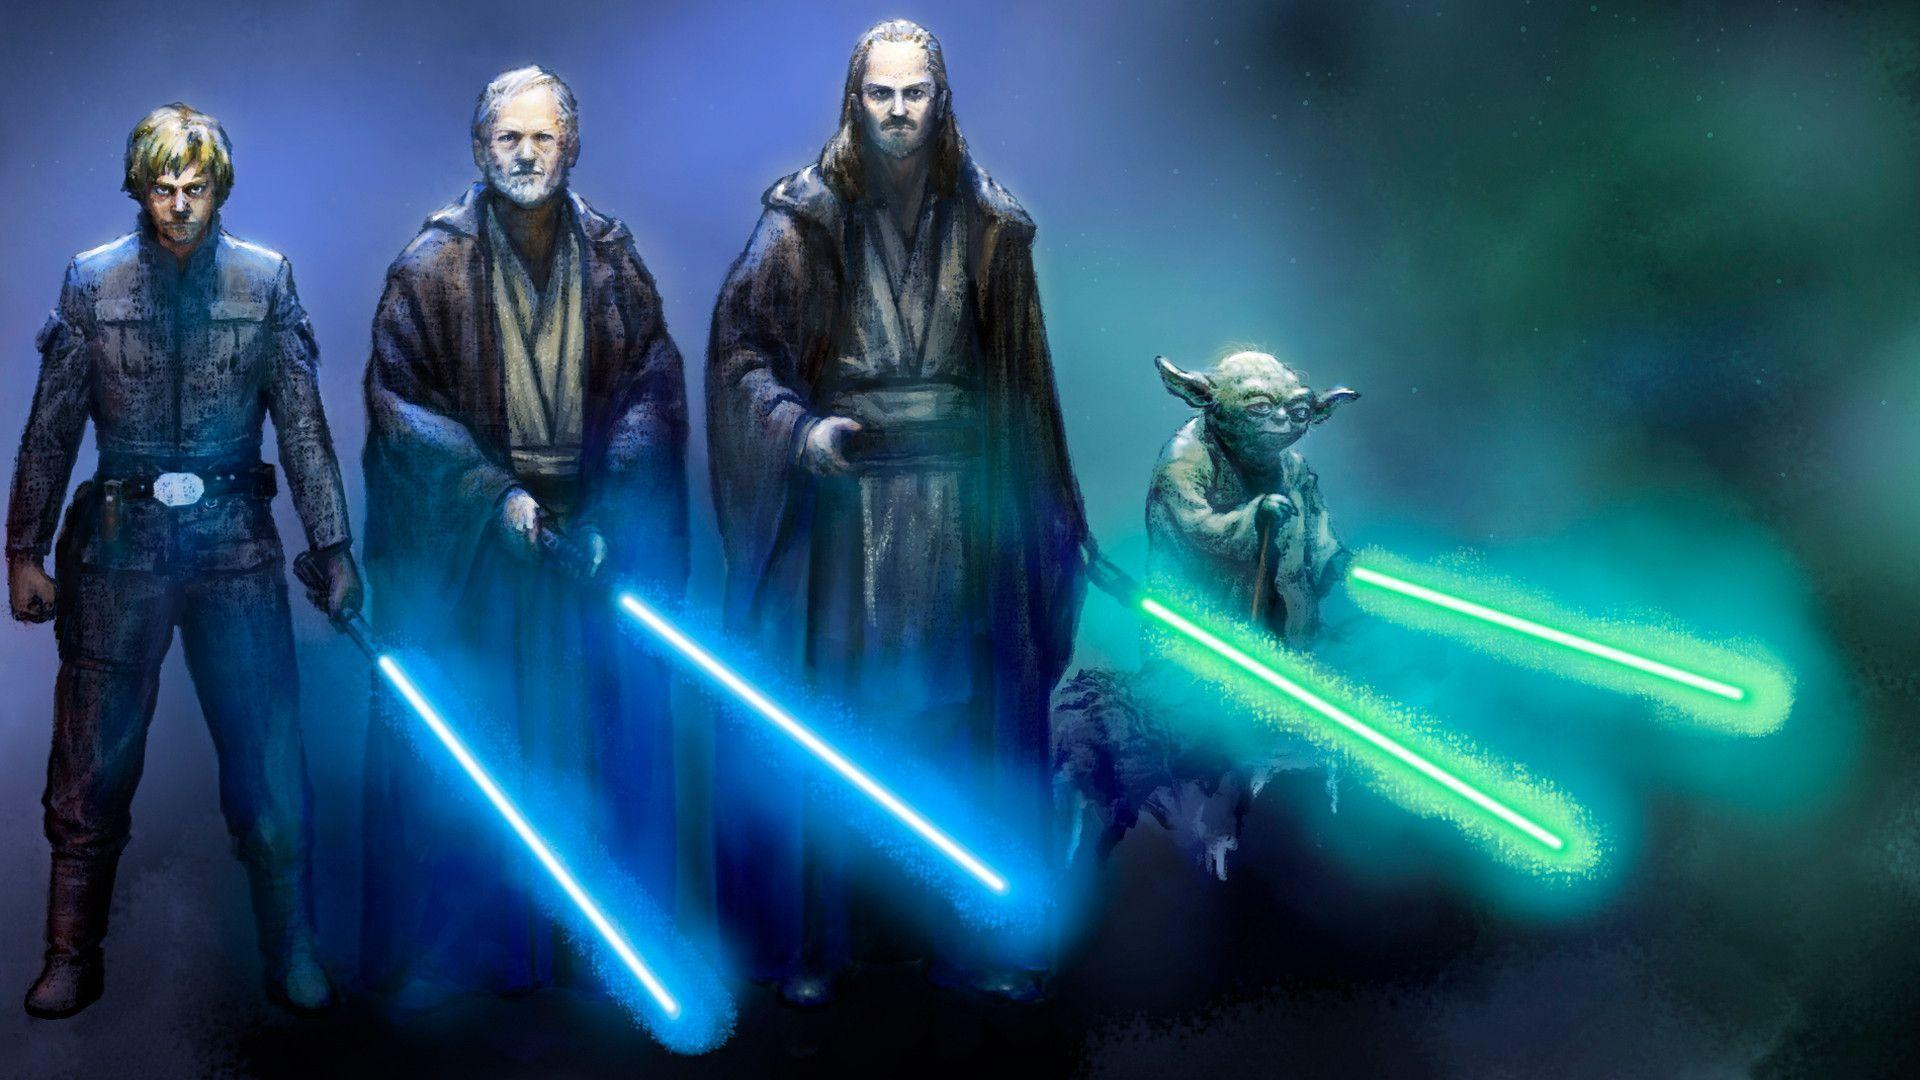 Star Wars Wallpaper Jedi